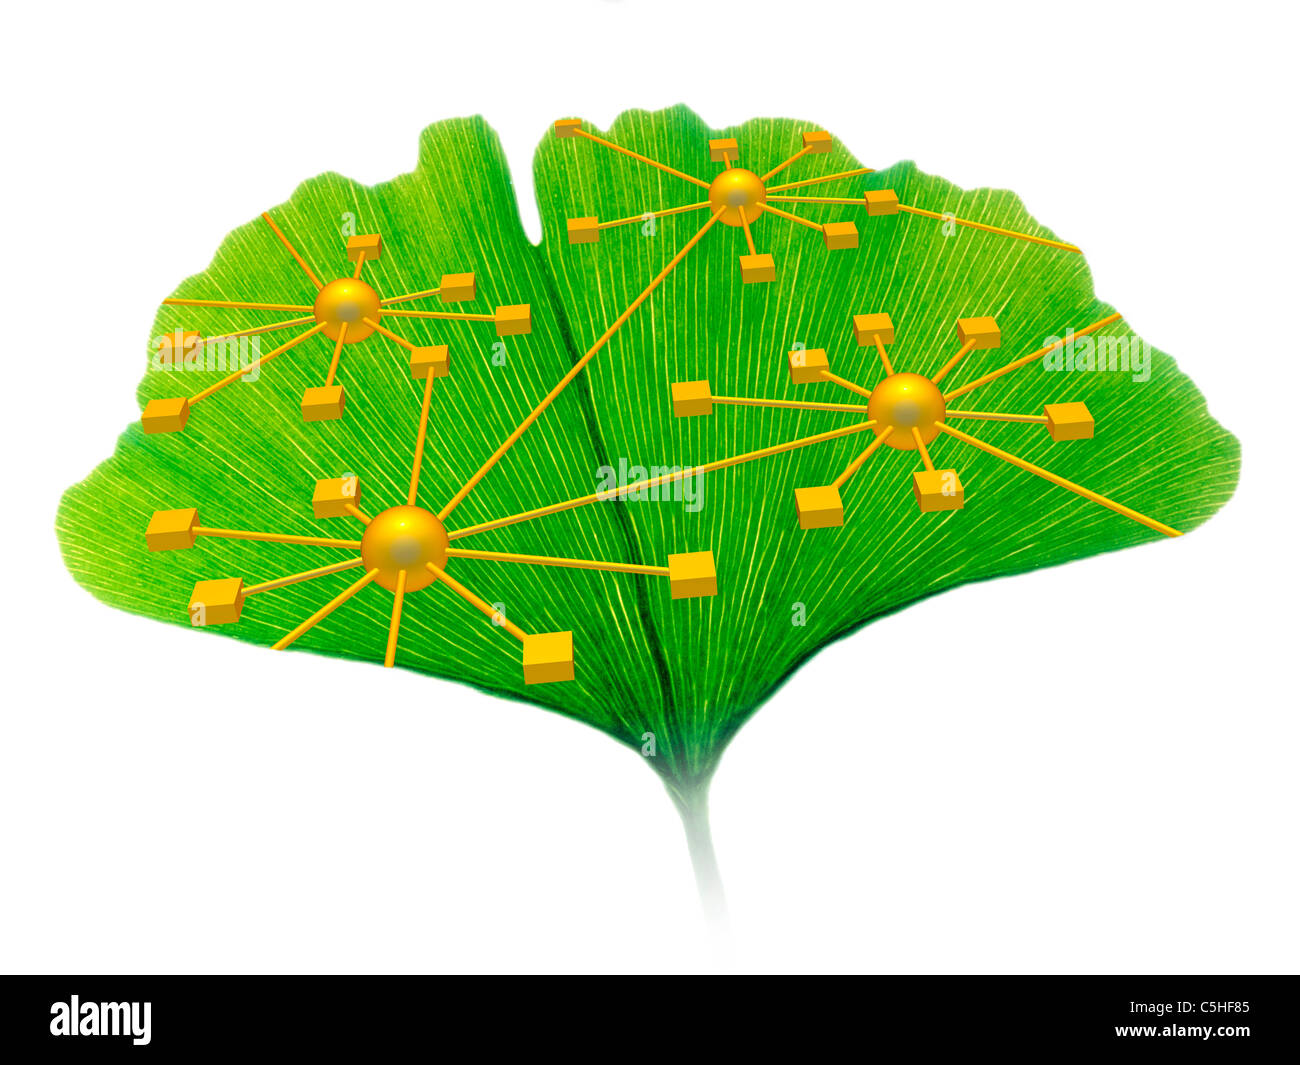 Ginkgo and network diagram - Stock Image